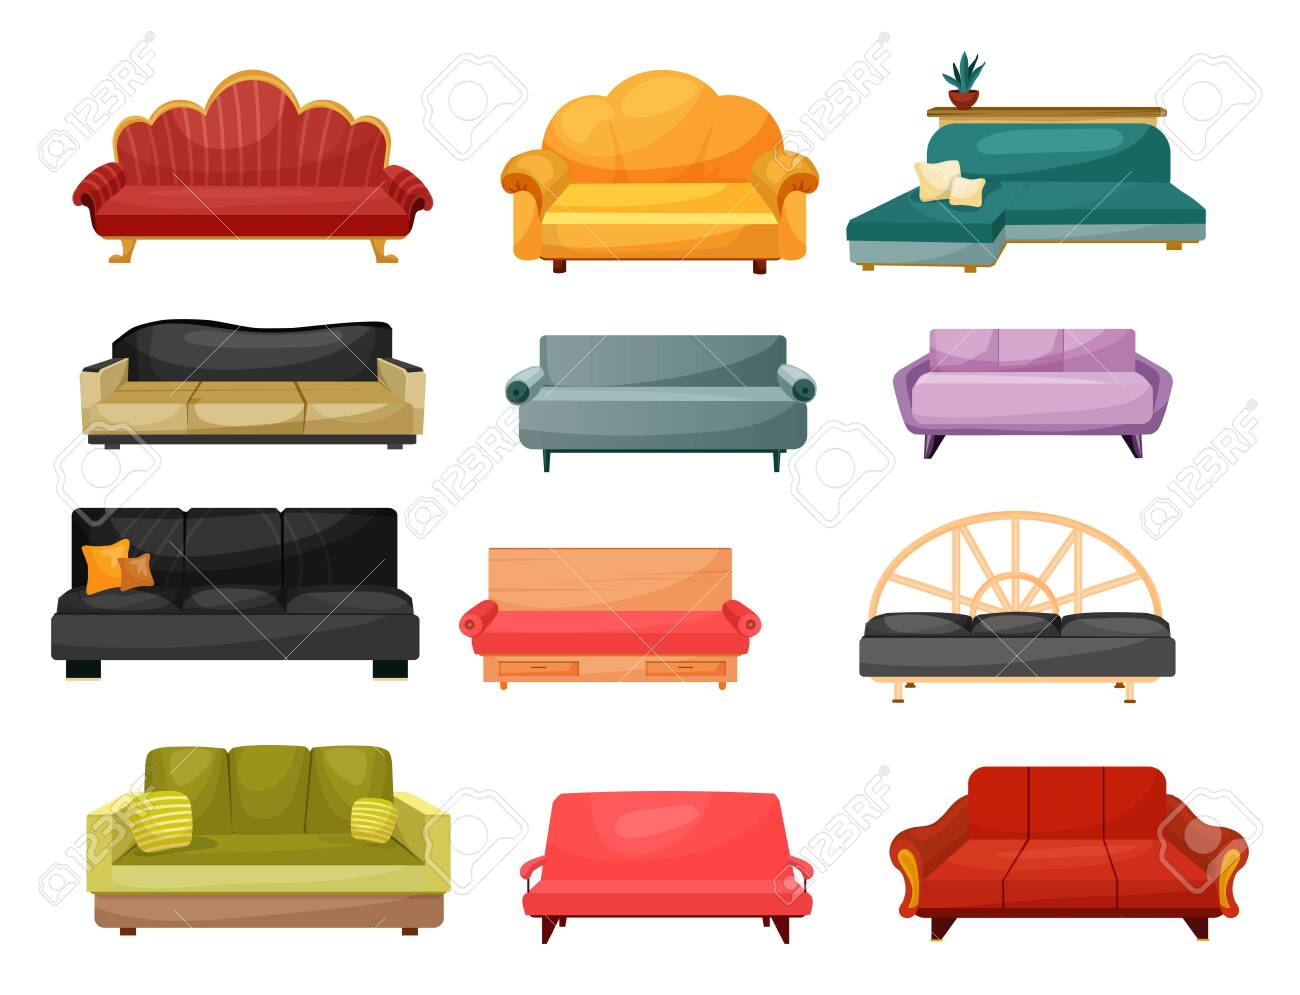 Sofa and lounge couch, vector flat icons of home furniture. Modern and classic vintage upholstery sofas, divans and settee with pillow cushions, home and office interior - 135824515